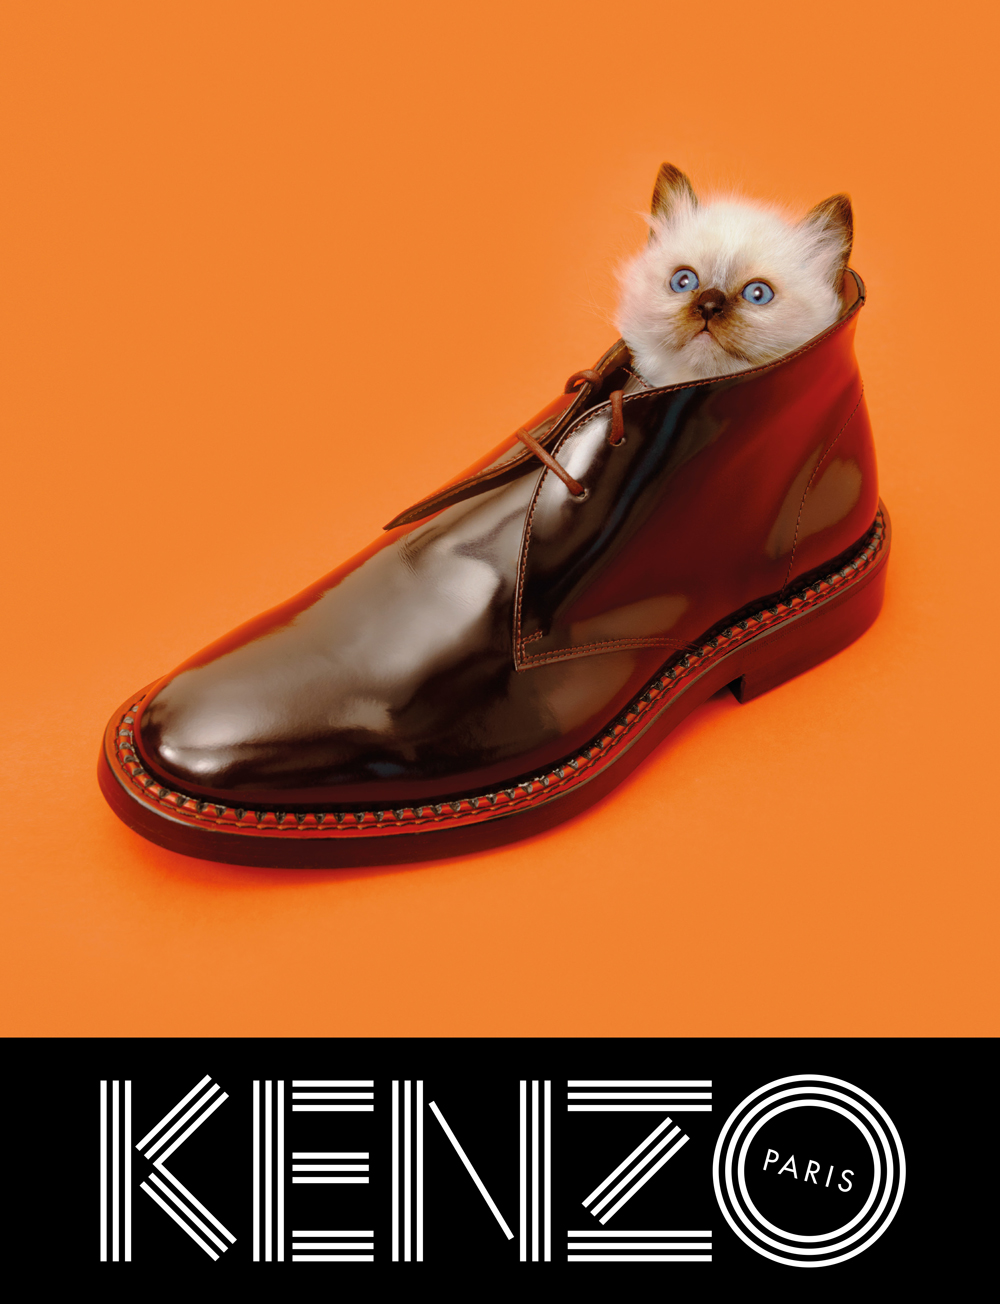 Kenzo fall/winter 2013 ad campaign by Maurizio Cattelan, Pierpaolo Ferrari